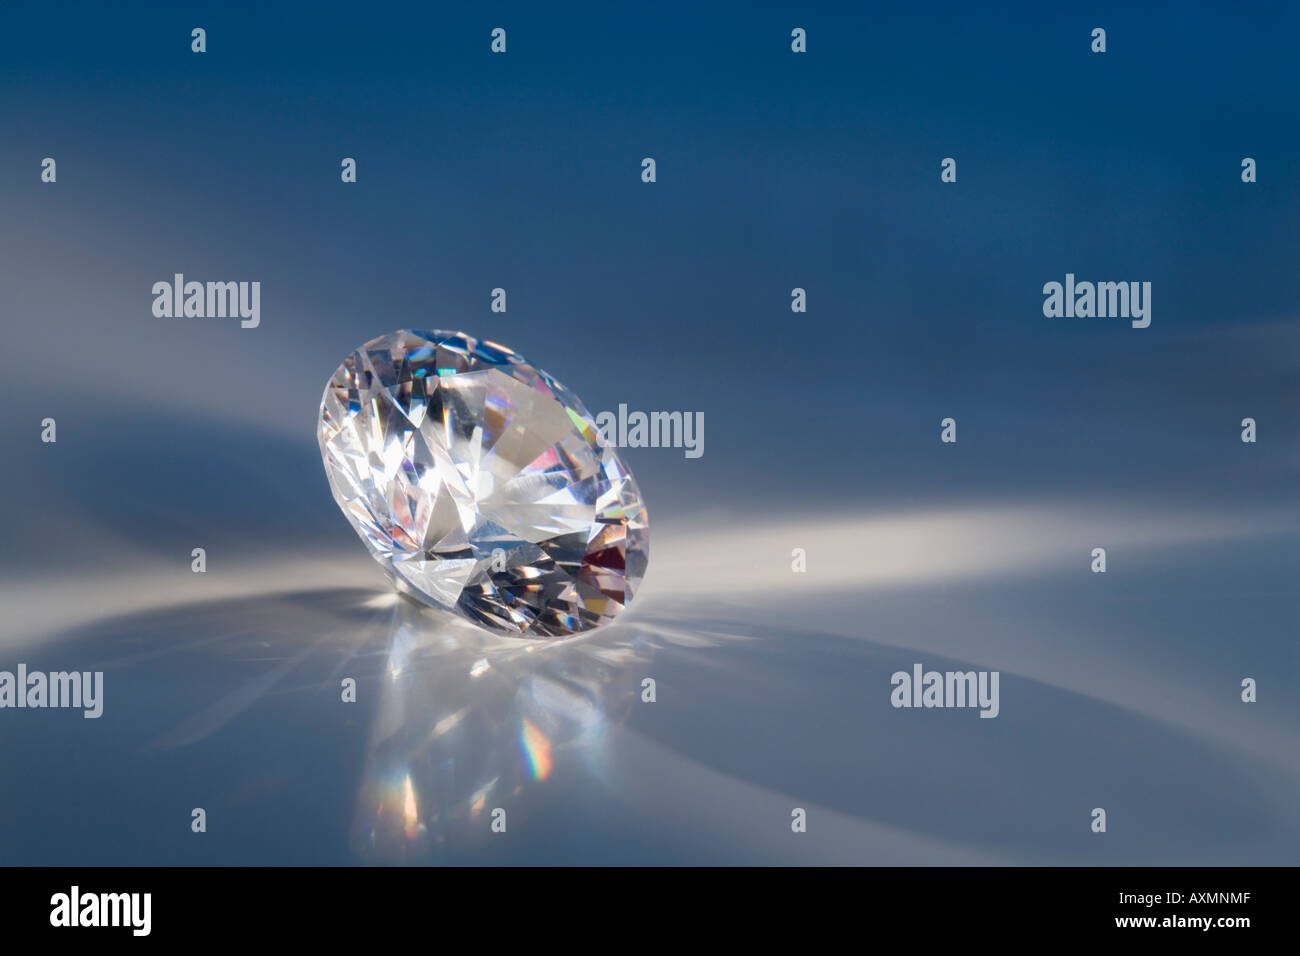 Closeup of a sparkly clear faceted gem - Stock Image